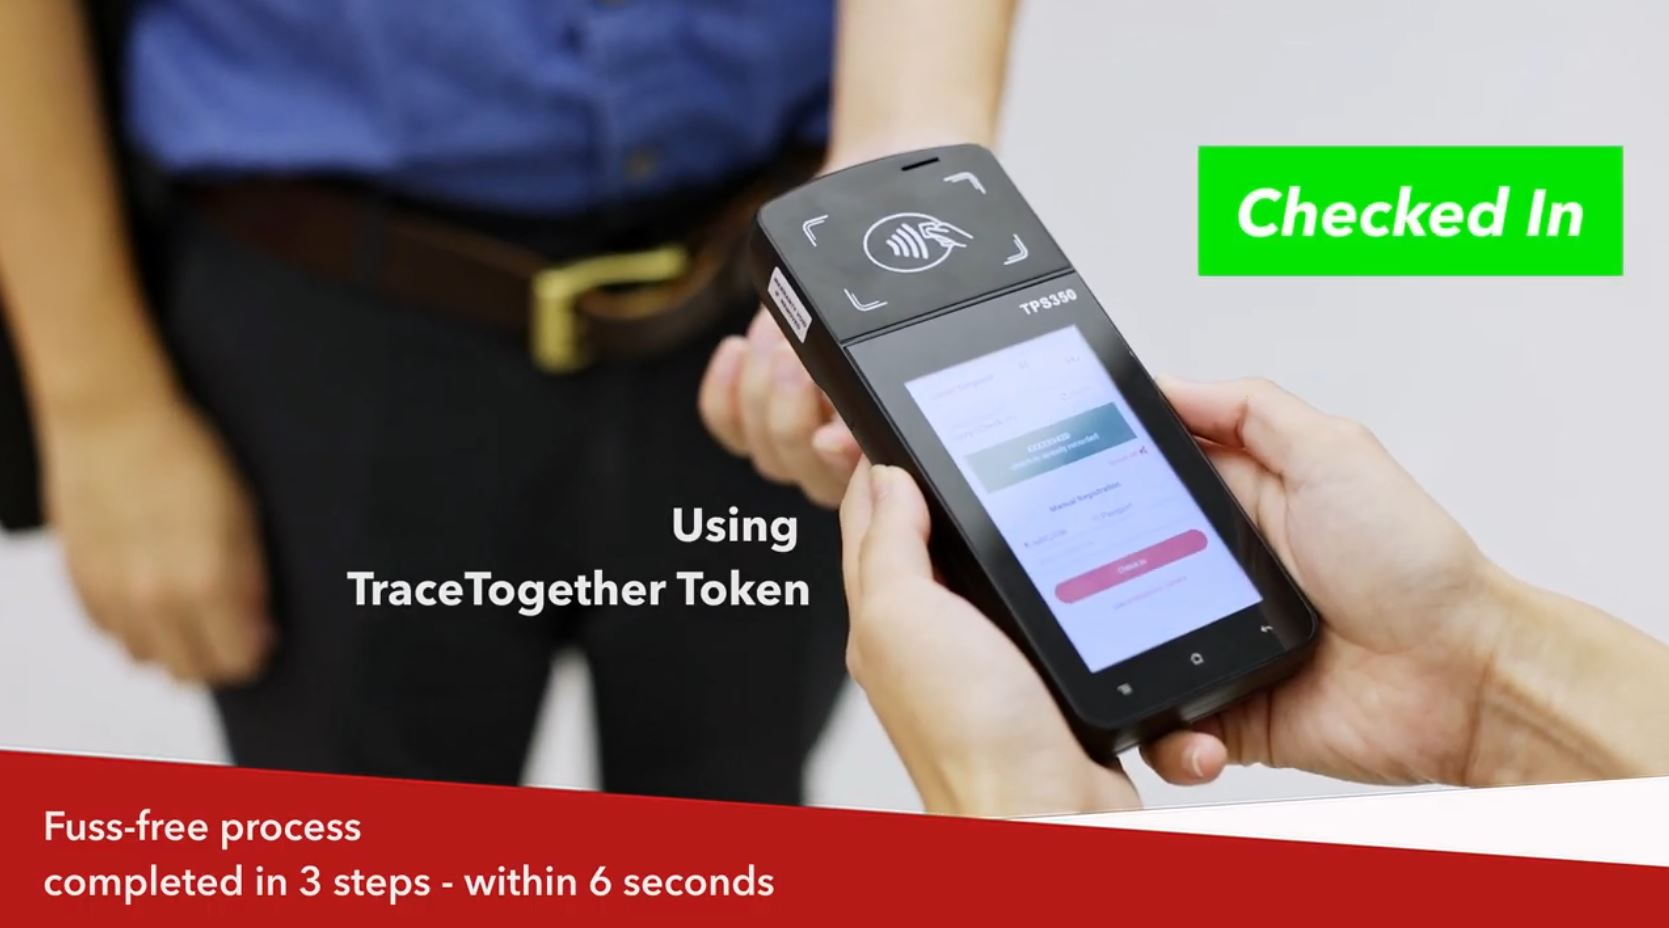 Canon Singapore introduces HITS – an all-in-one Mobile Solution for fast entry to establishments, accomplishing all check-in protocols within seconds - Alvinology